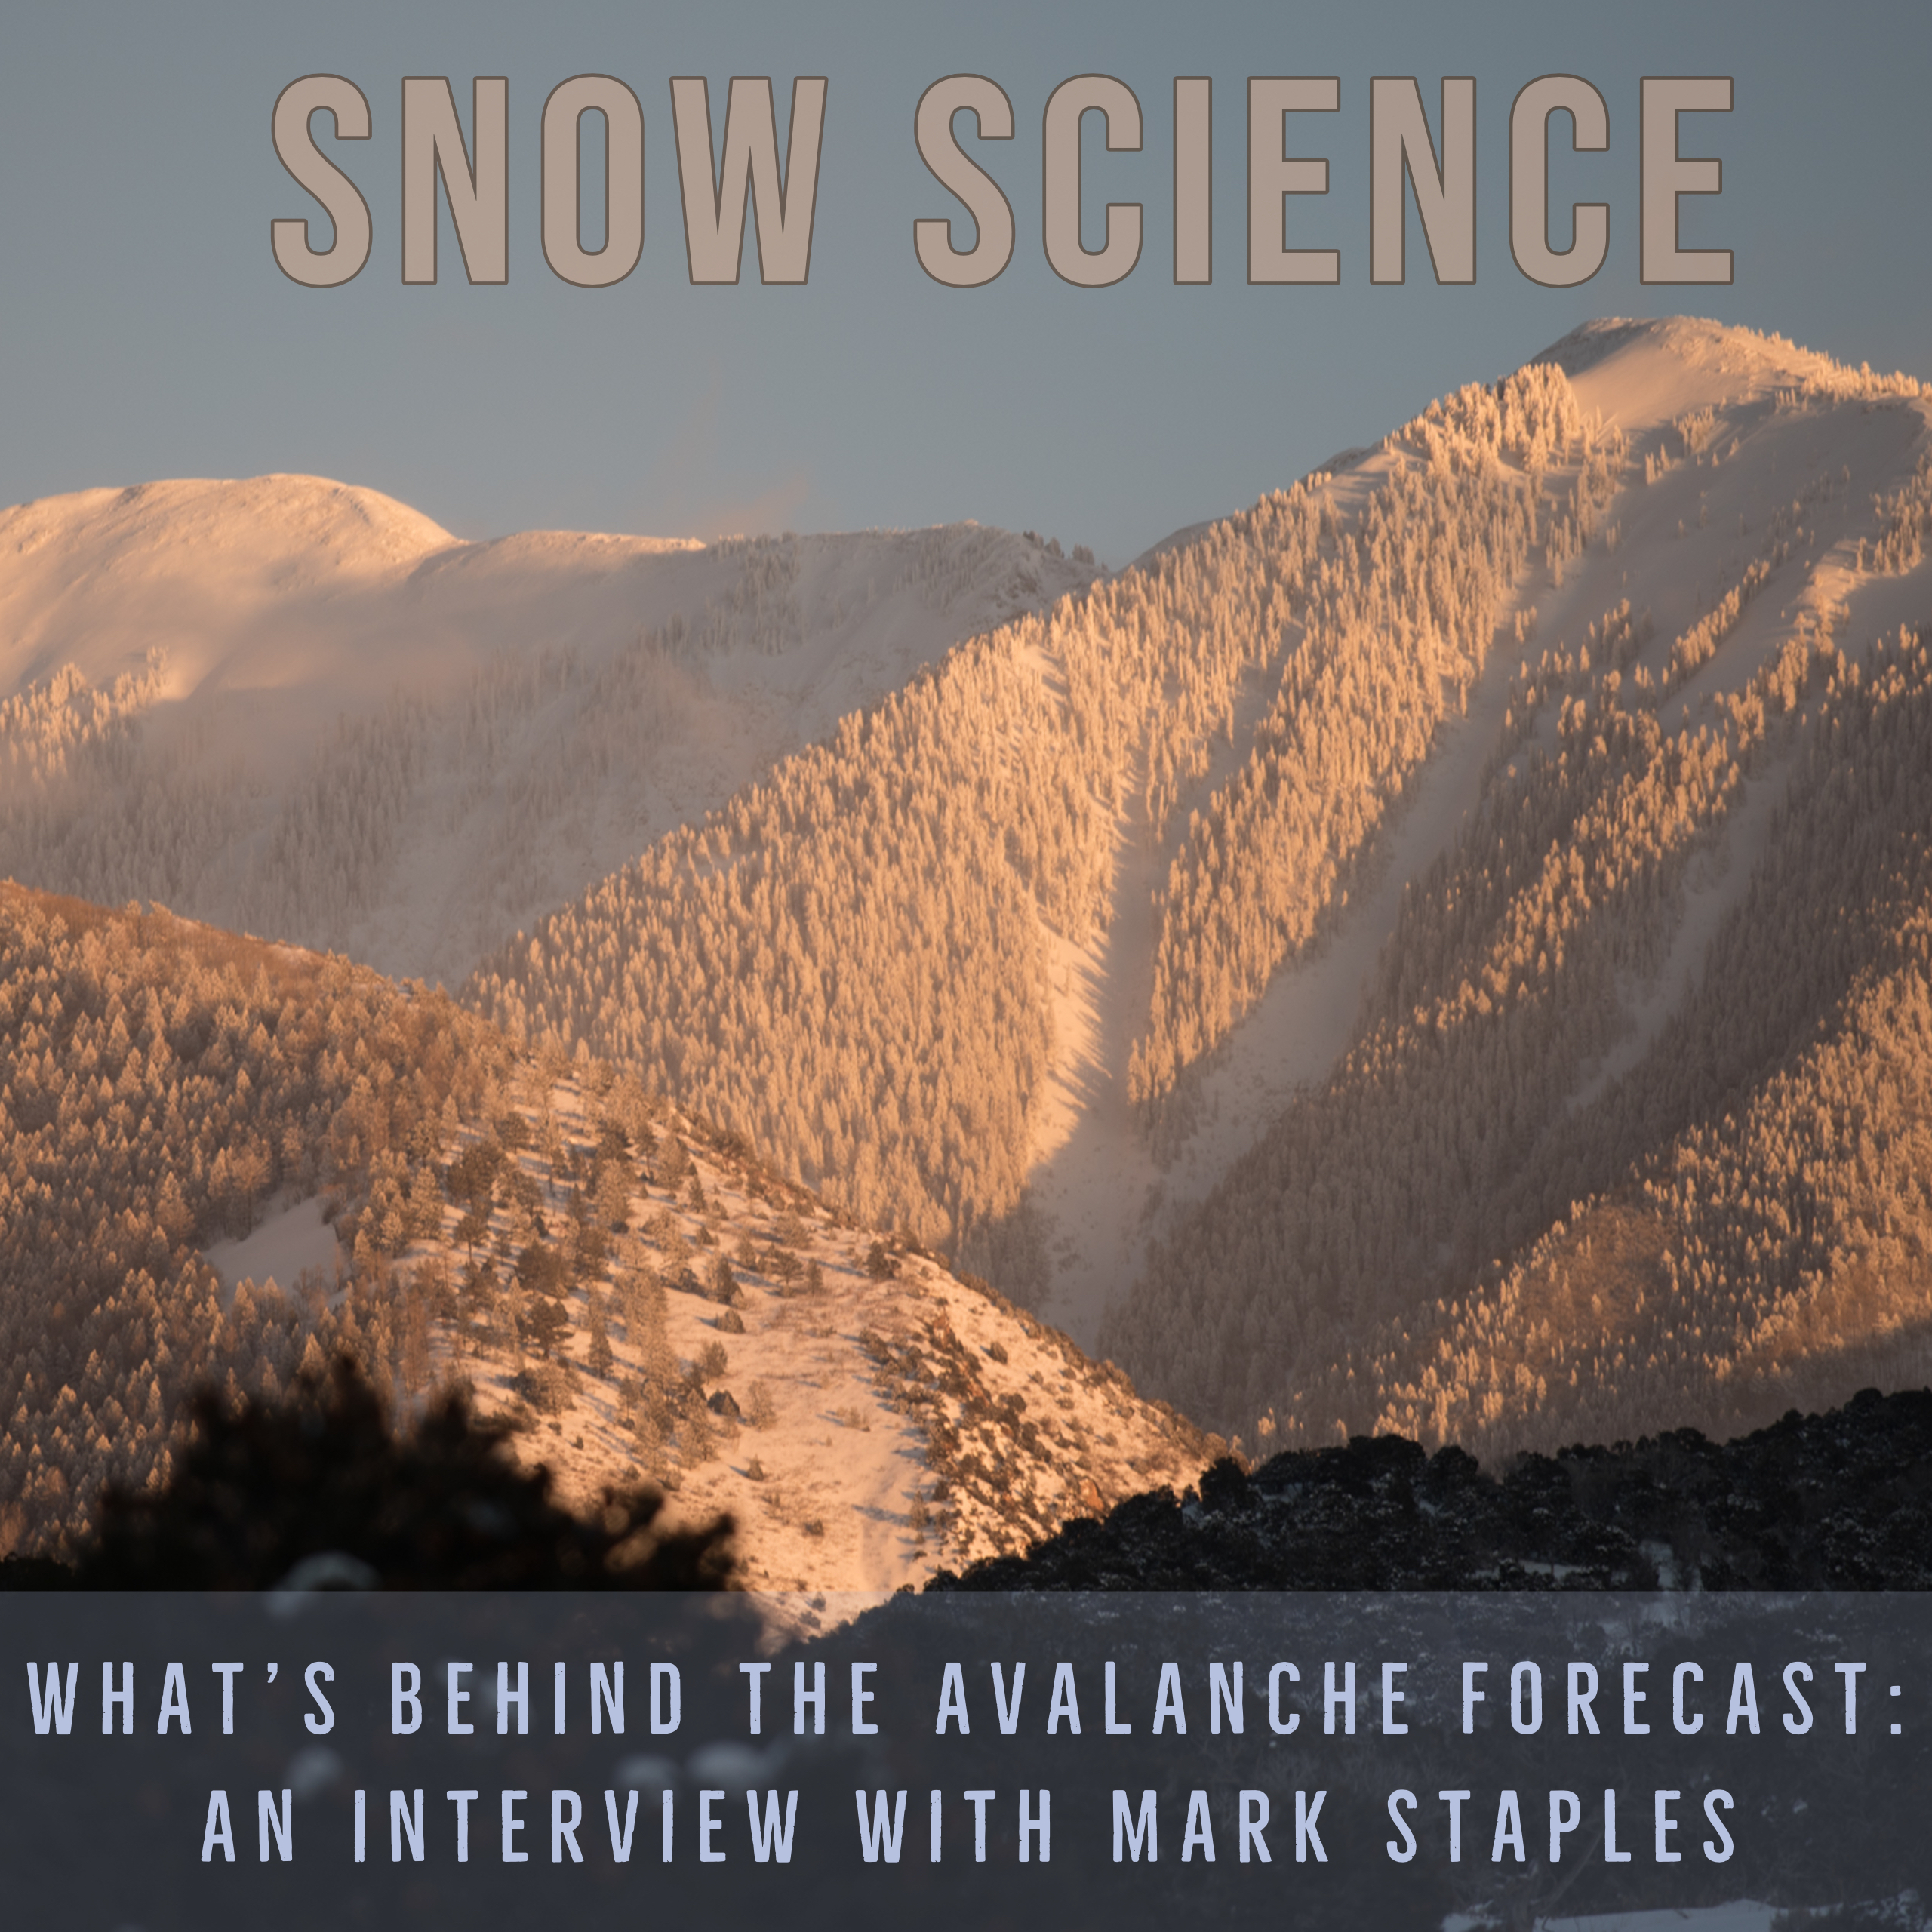 Snow Science and the Avalanche Forecast